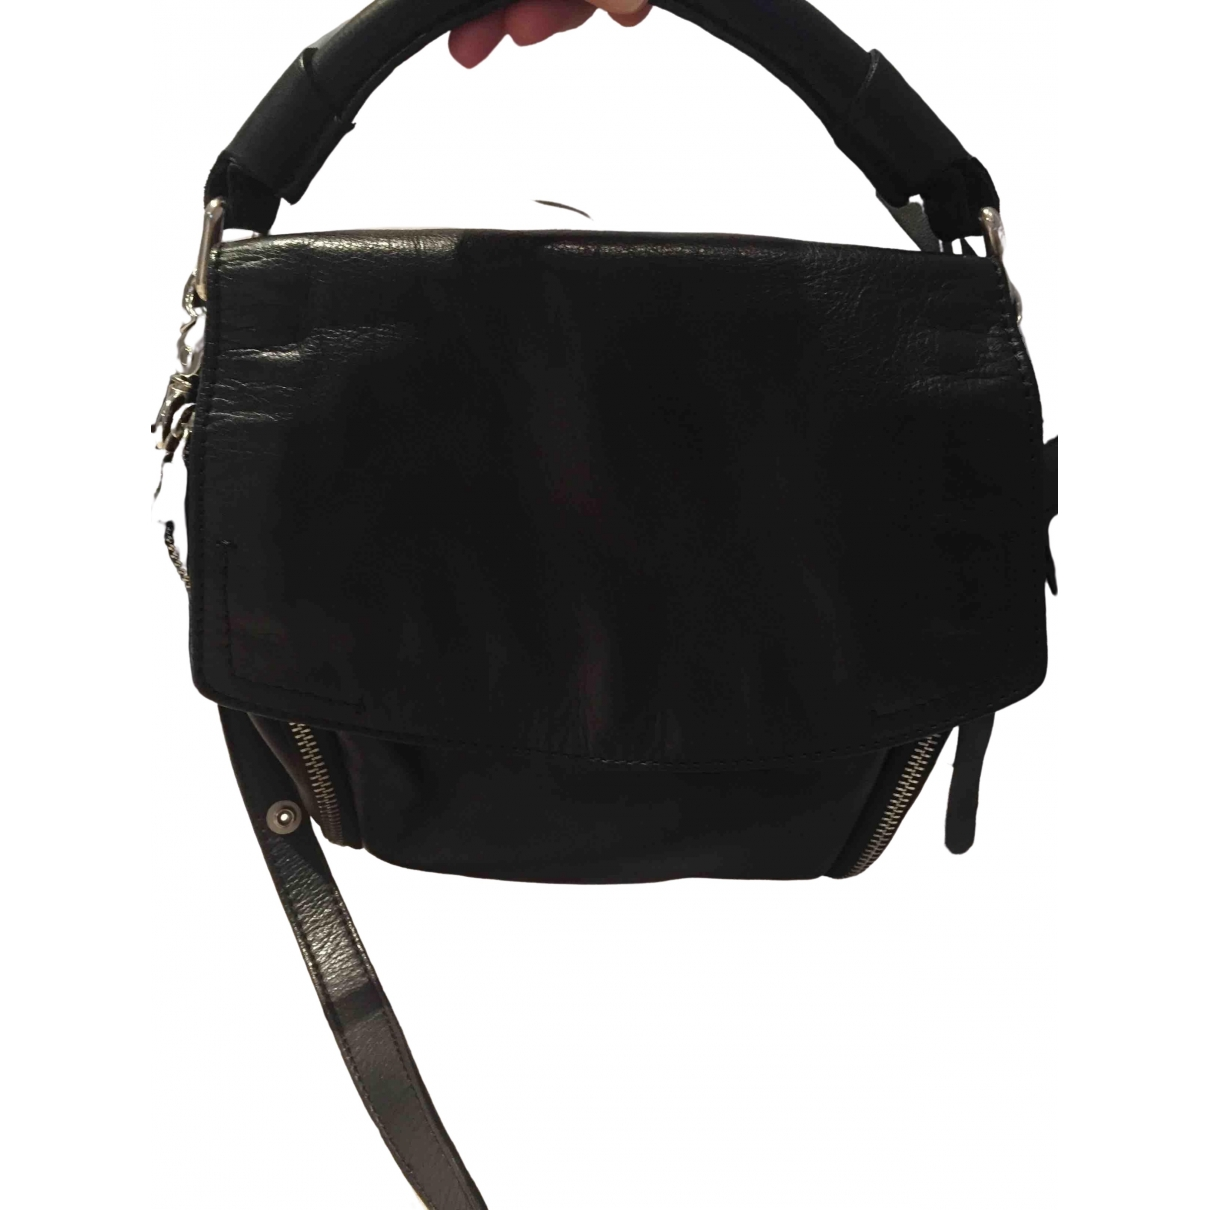 Zara \N Black Leather handbag for Women \N